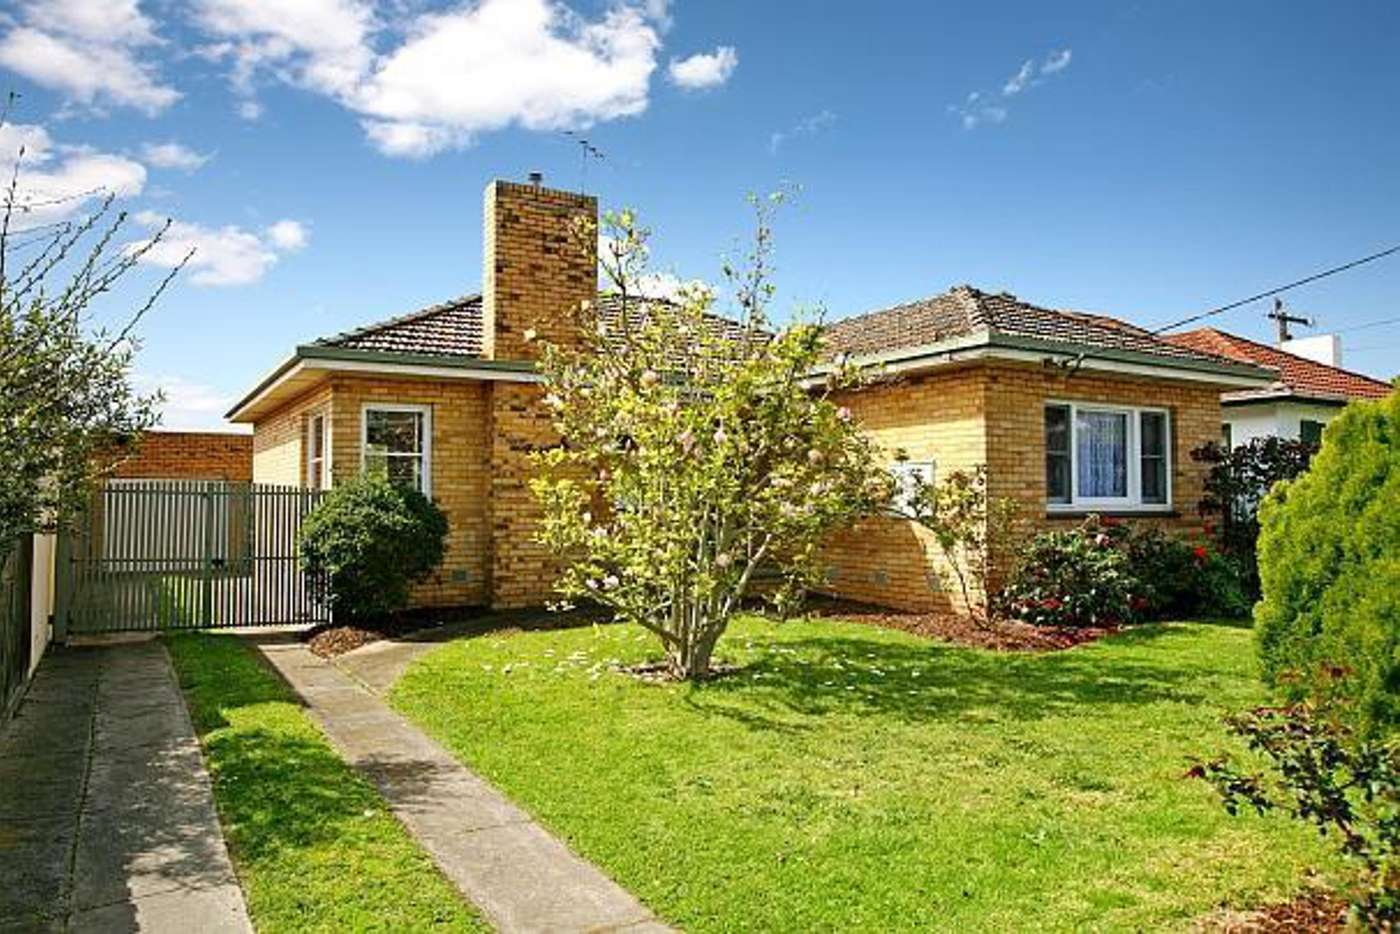 Main view of Homely house listing, 31 Renown Street, Bentleigh VIC 3204